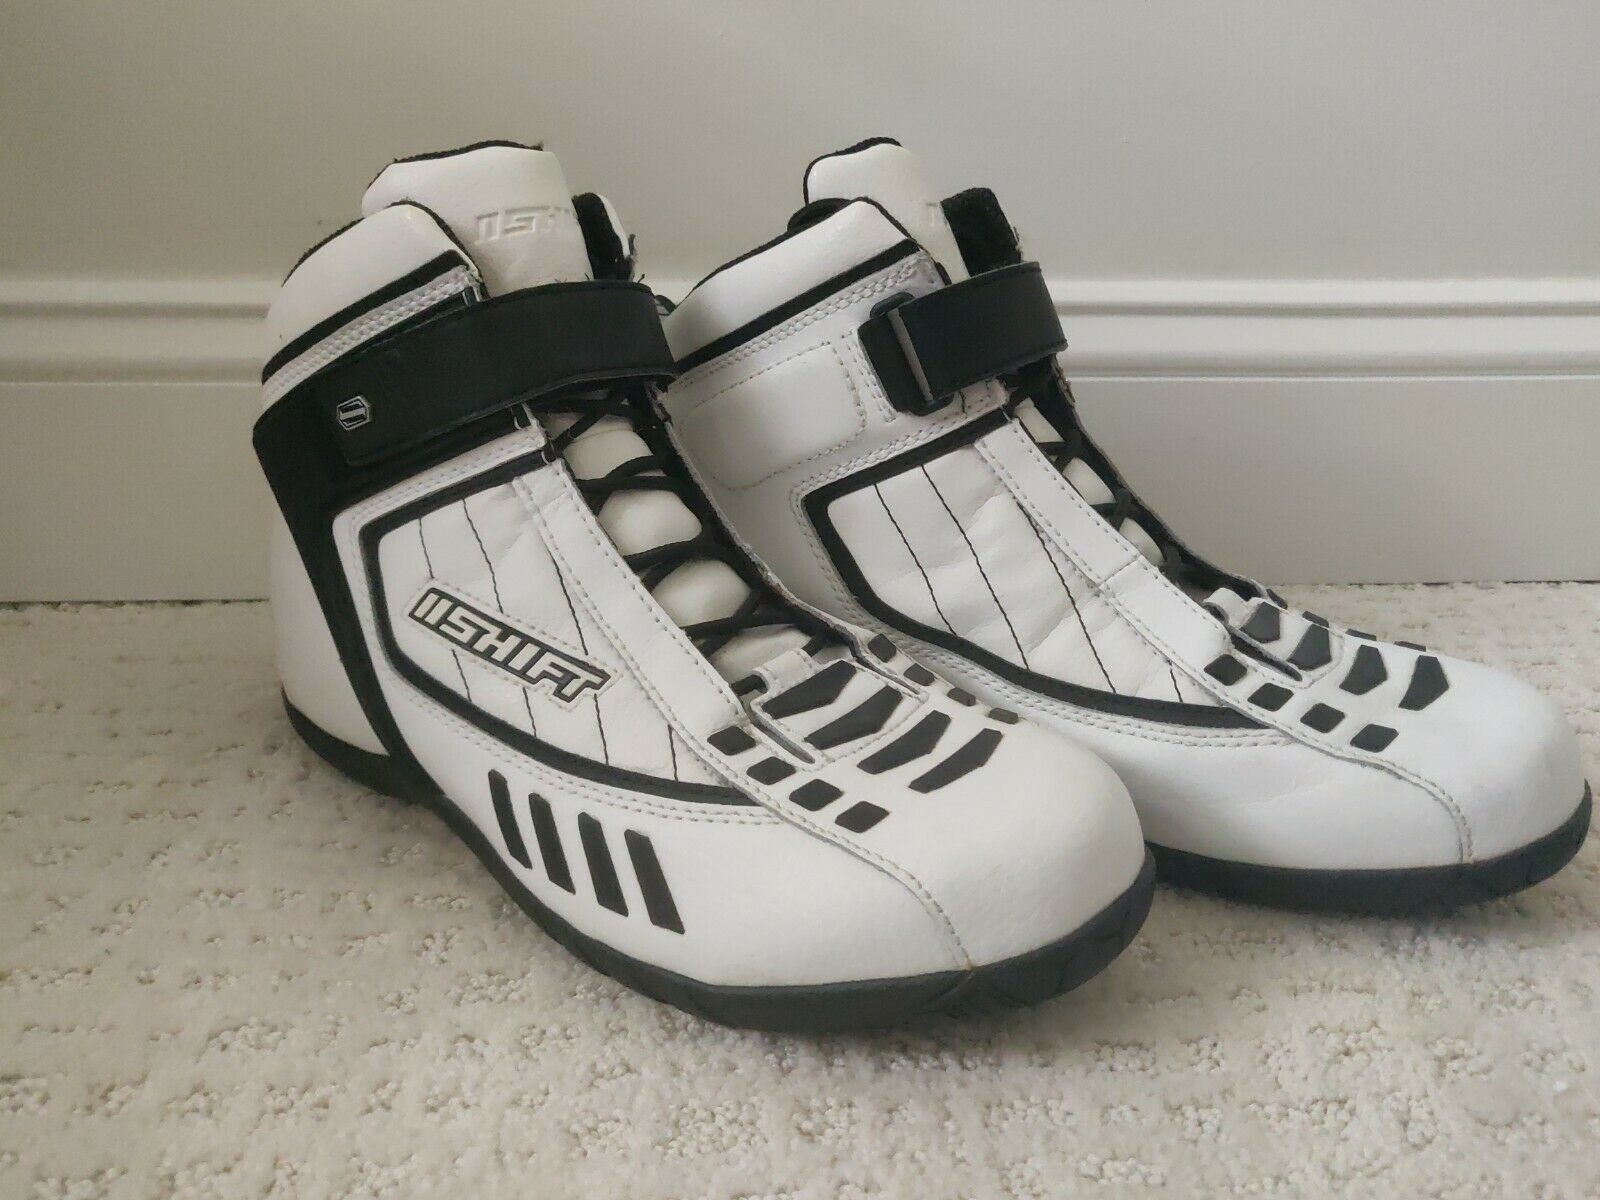 Shift Racing Fuel Men's Size 12 Motorcycle Street Riding Shoes